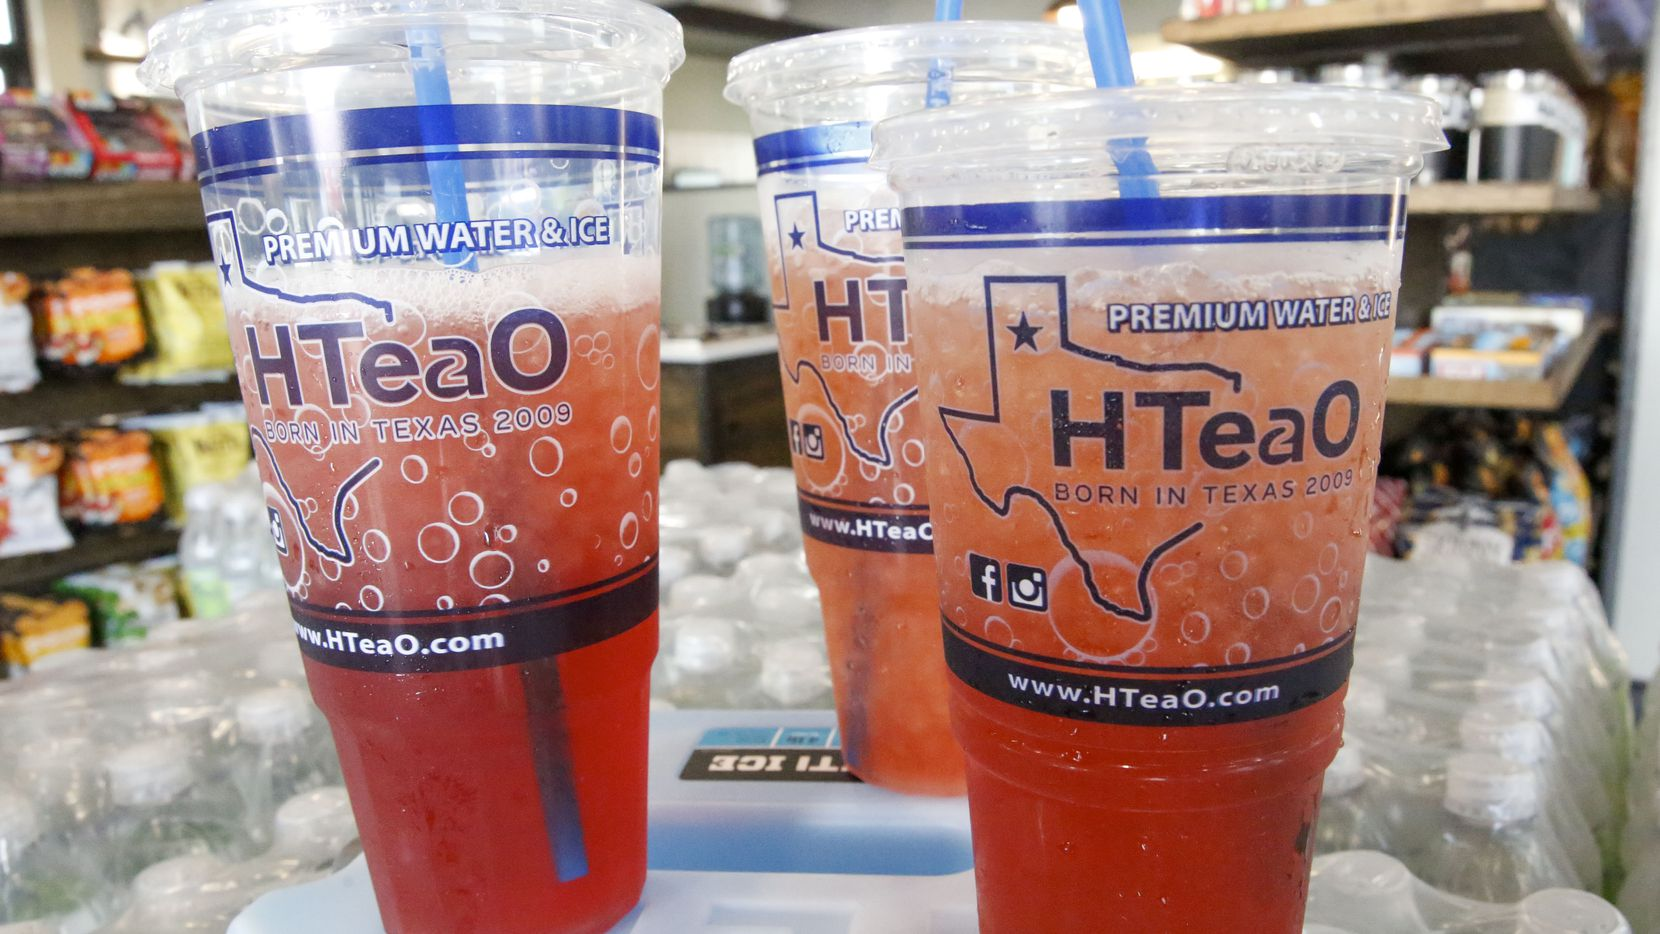 Iced tea in cups offered at the new iced tea business called HTEAO in Carrollton.